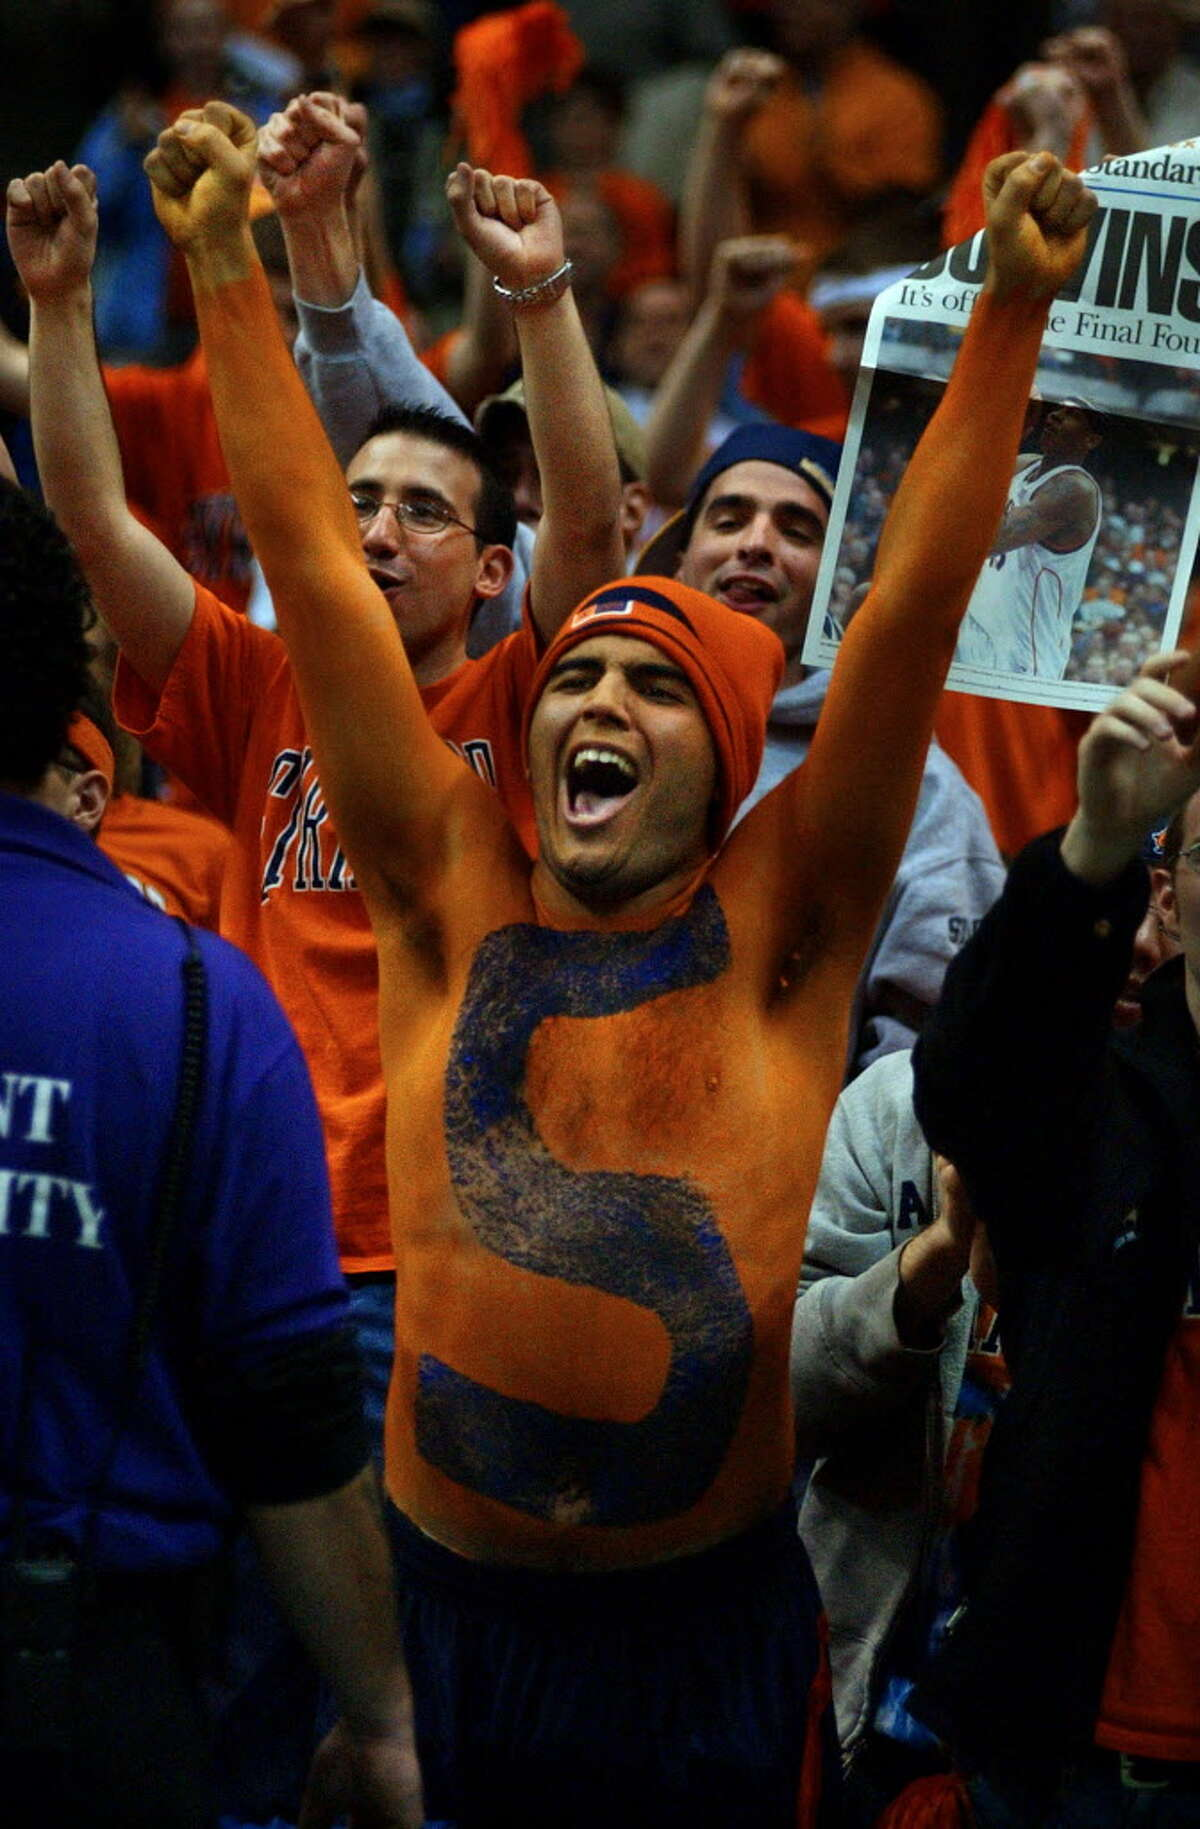 Times Union Staff photograph by Philip Kamrass -- Syracuse University freshman Nick Friedell of Orlando, Florida sports orange and blue body paint while celebrating after his team's 63-47 victory over Oklahoma in the NCAA East Regional at the Pepsi Arena in Albany, NY Sunday March 30, 2003. A copy of the Syracuse Post Standard front page reporting the win is in the background at right.